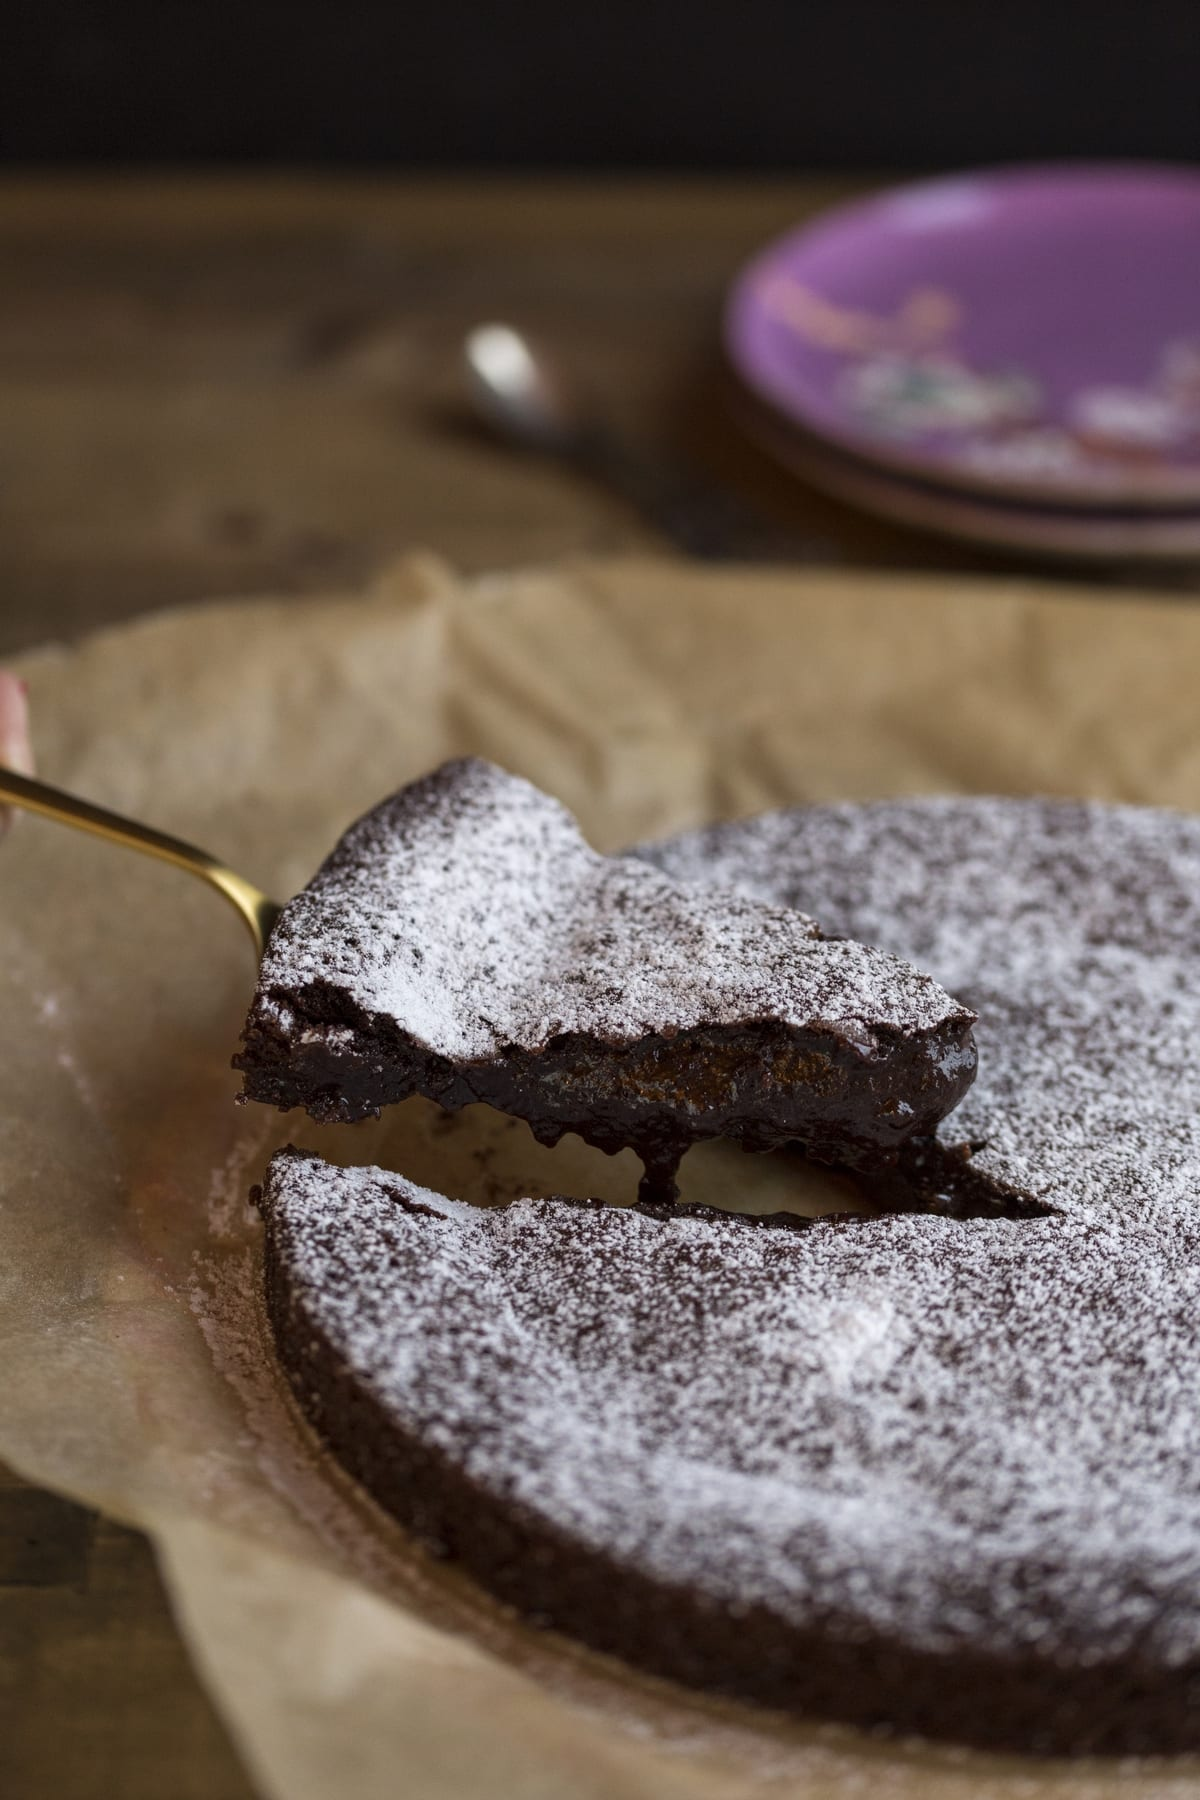 A slice of kladdkaka being lifted on a cake spatula.